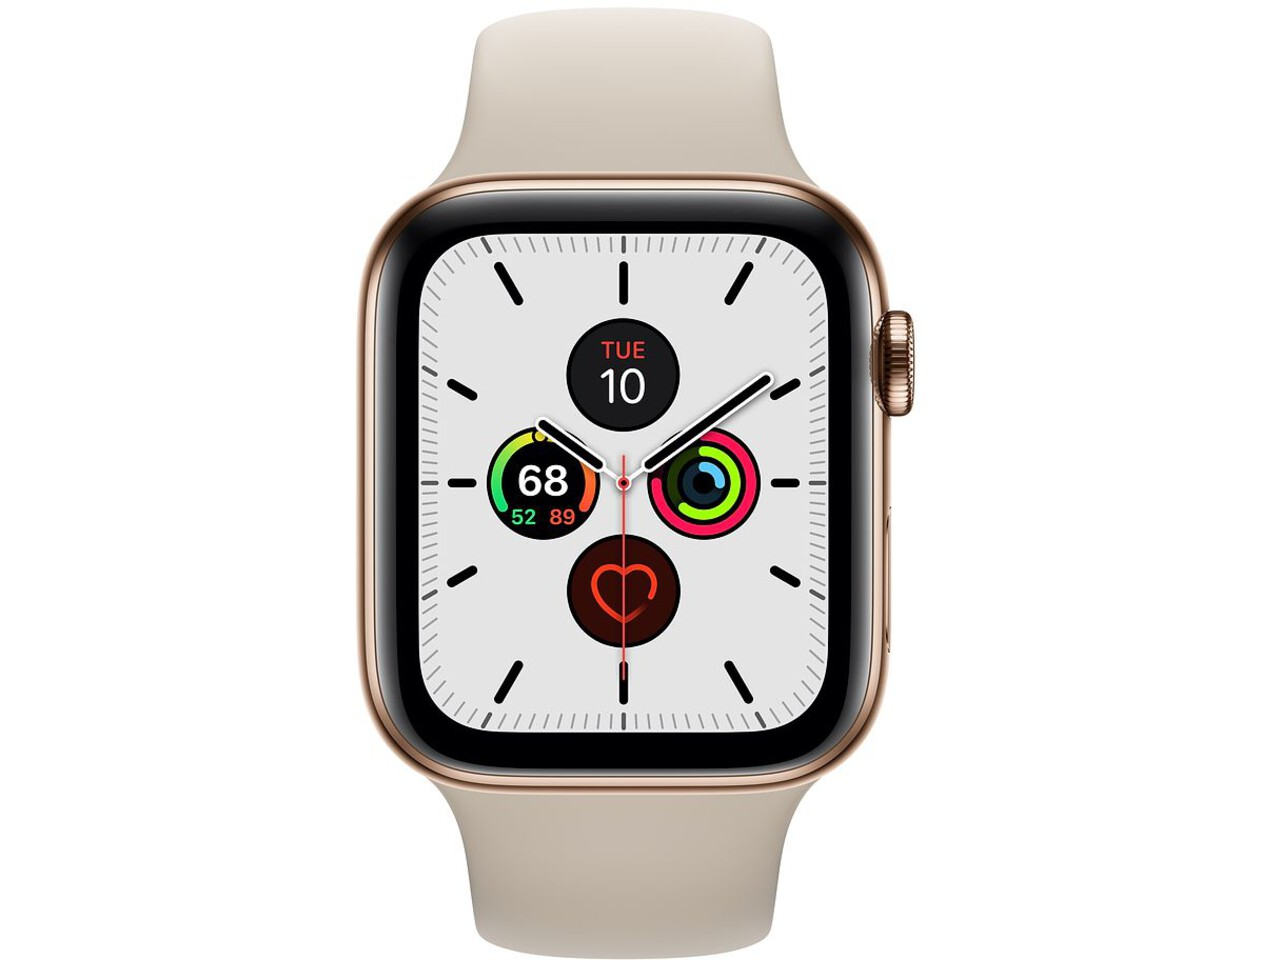 apple watch series 5 cellular 44mm gold stainless steel stone sport band